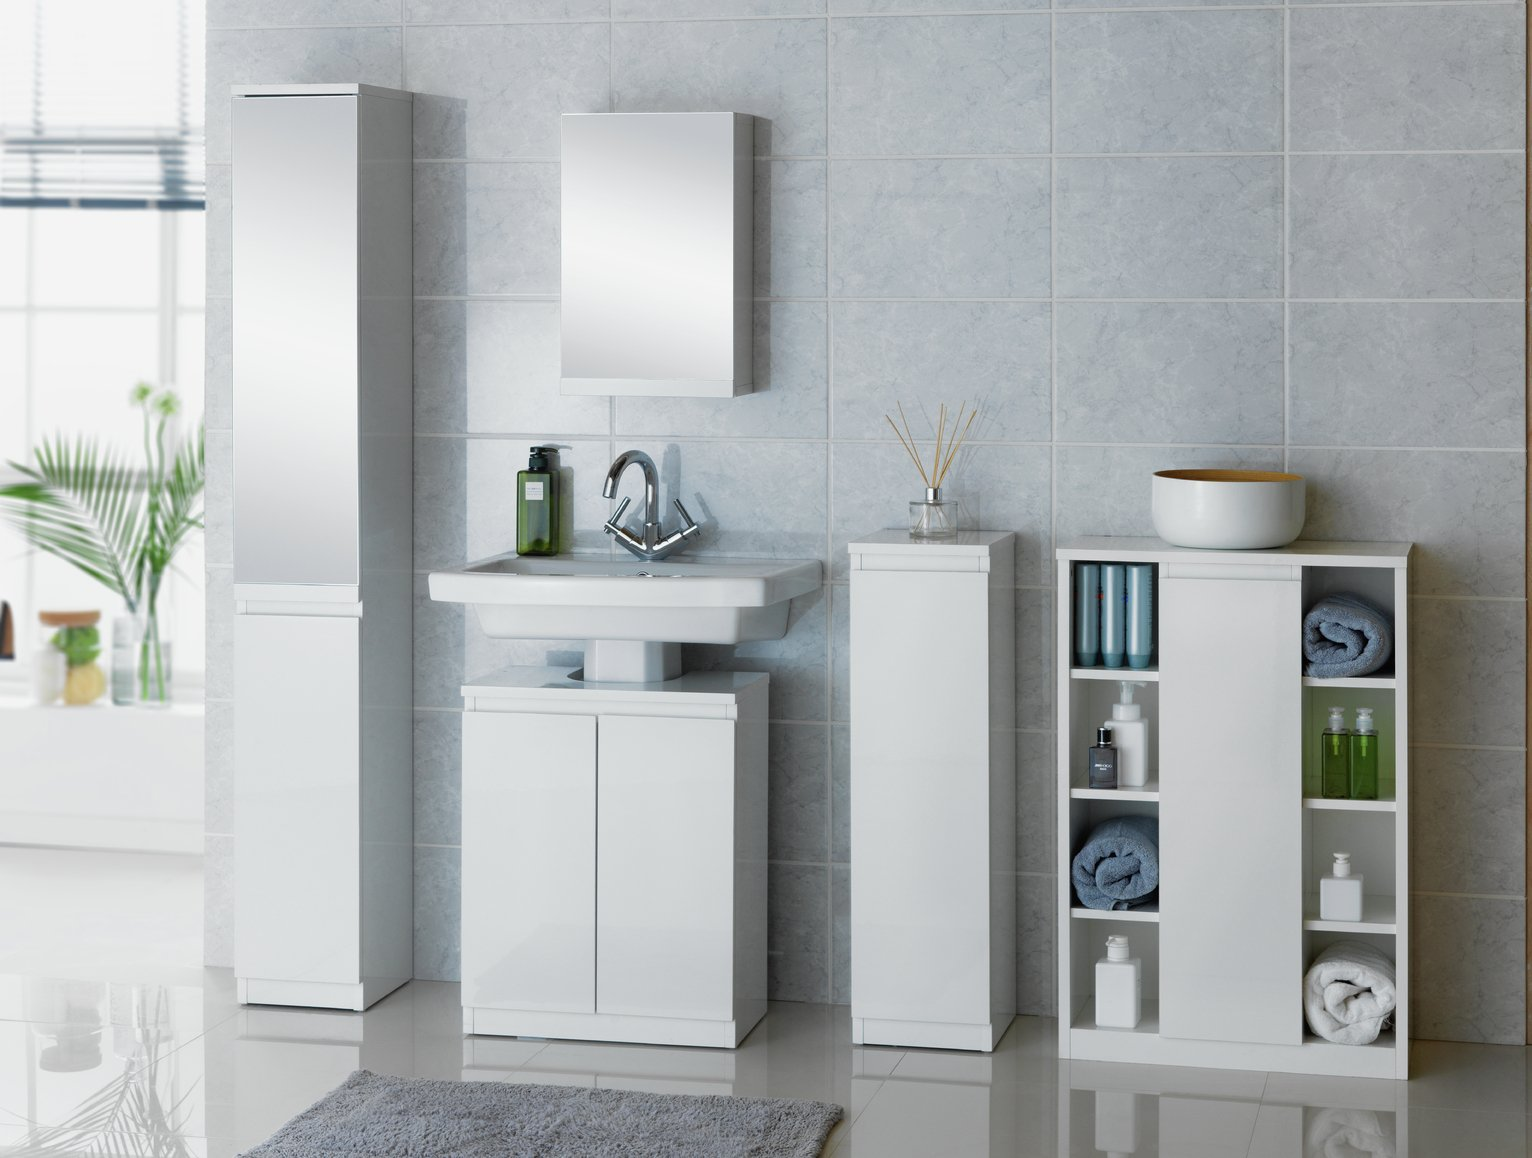 Buy Hygena Gloss Floor Cabinet Storage White at Argos